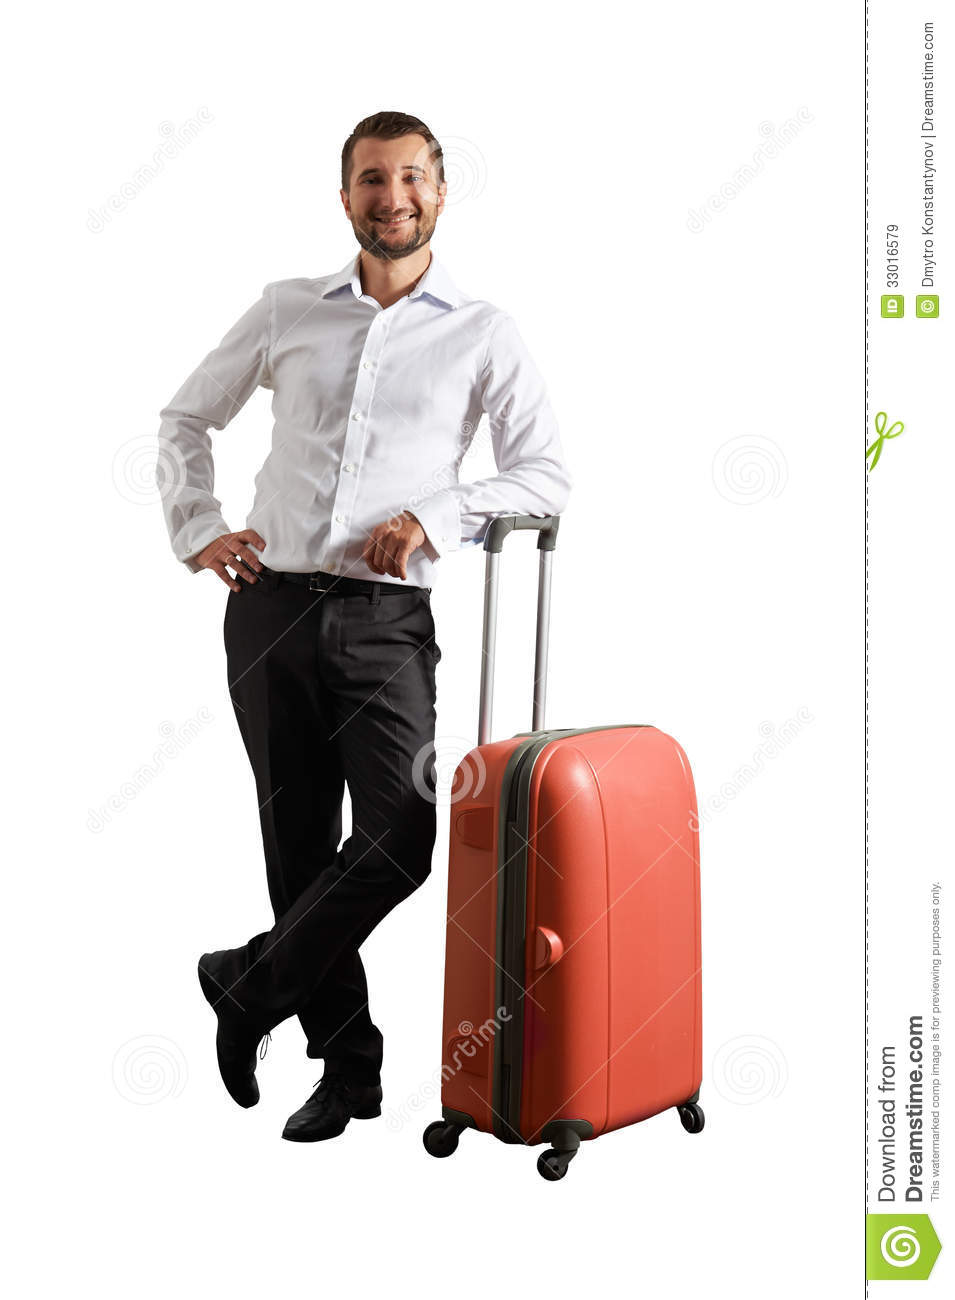 happy-man-standing-suitcase-isolated-whi